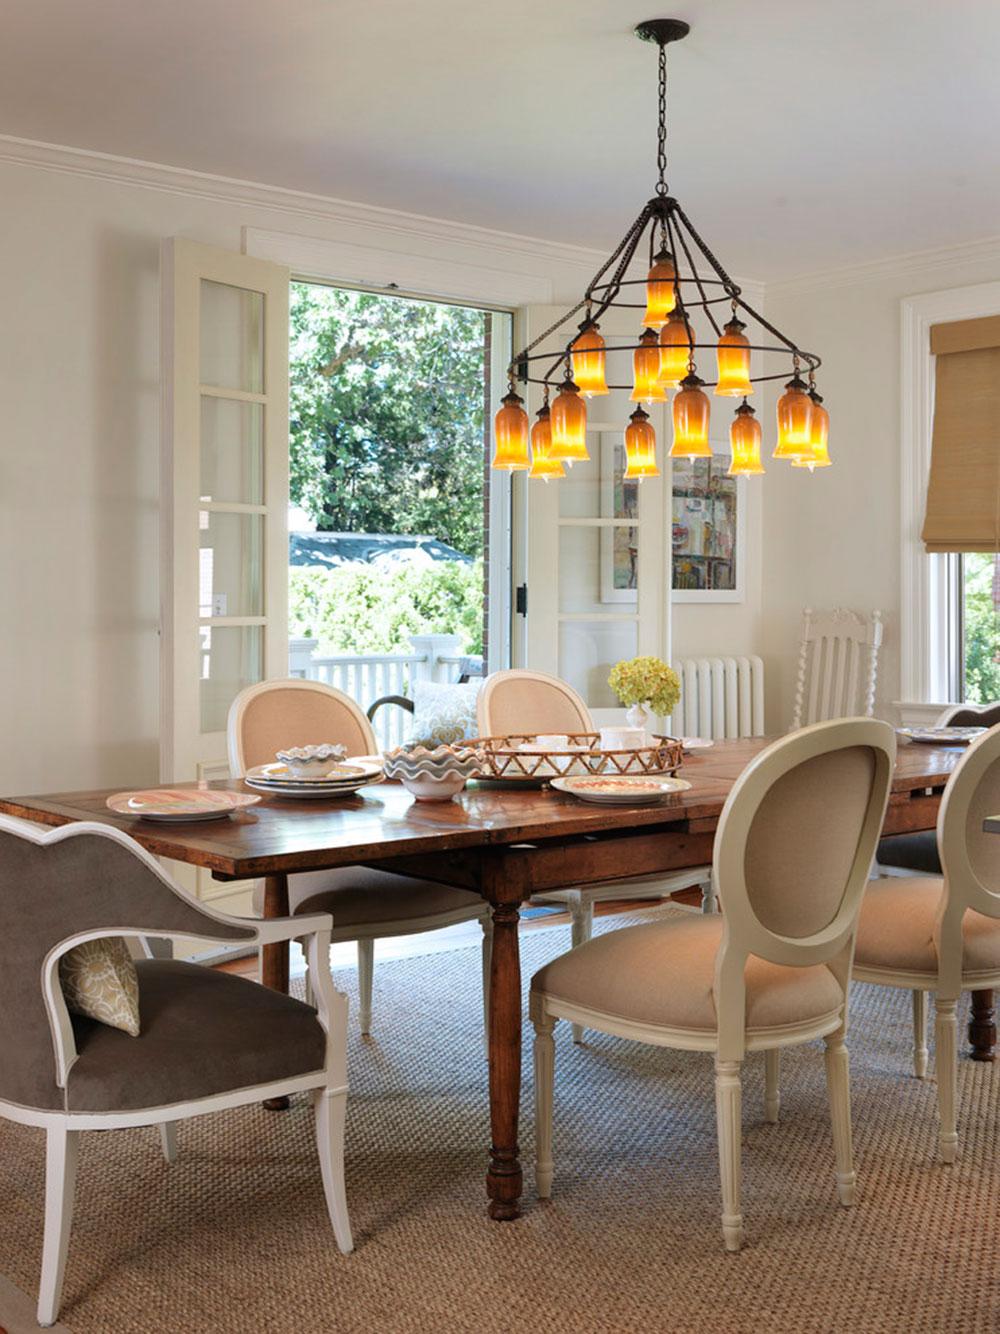 Tips For Choosing The Right Dining Chairs 4 Tips For Choosing The Right Dining Chairs